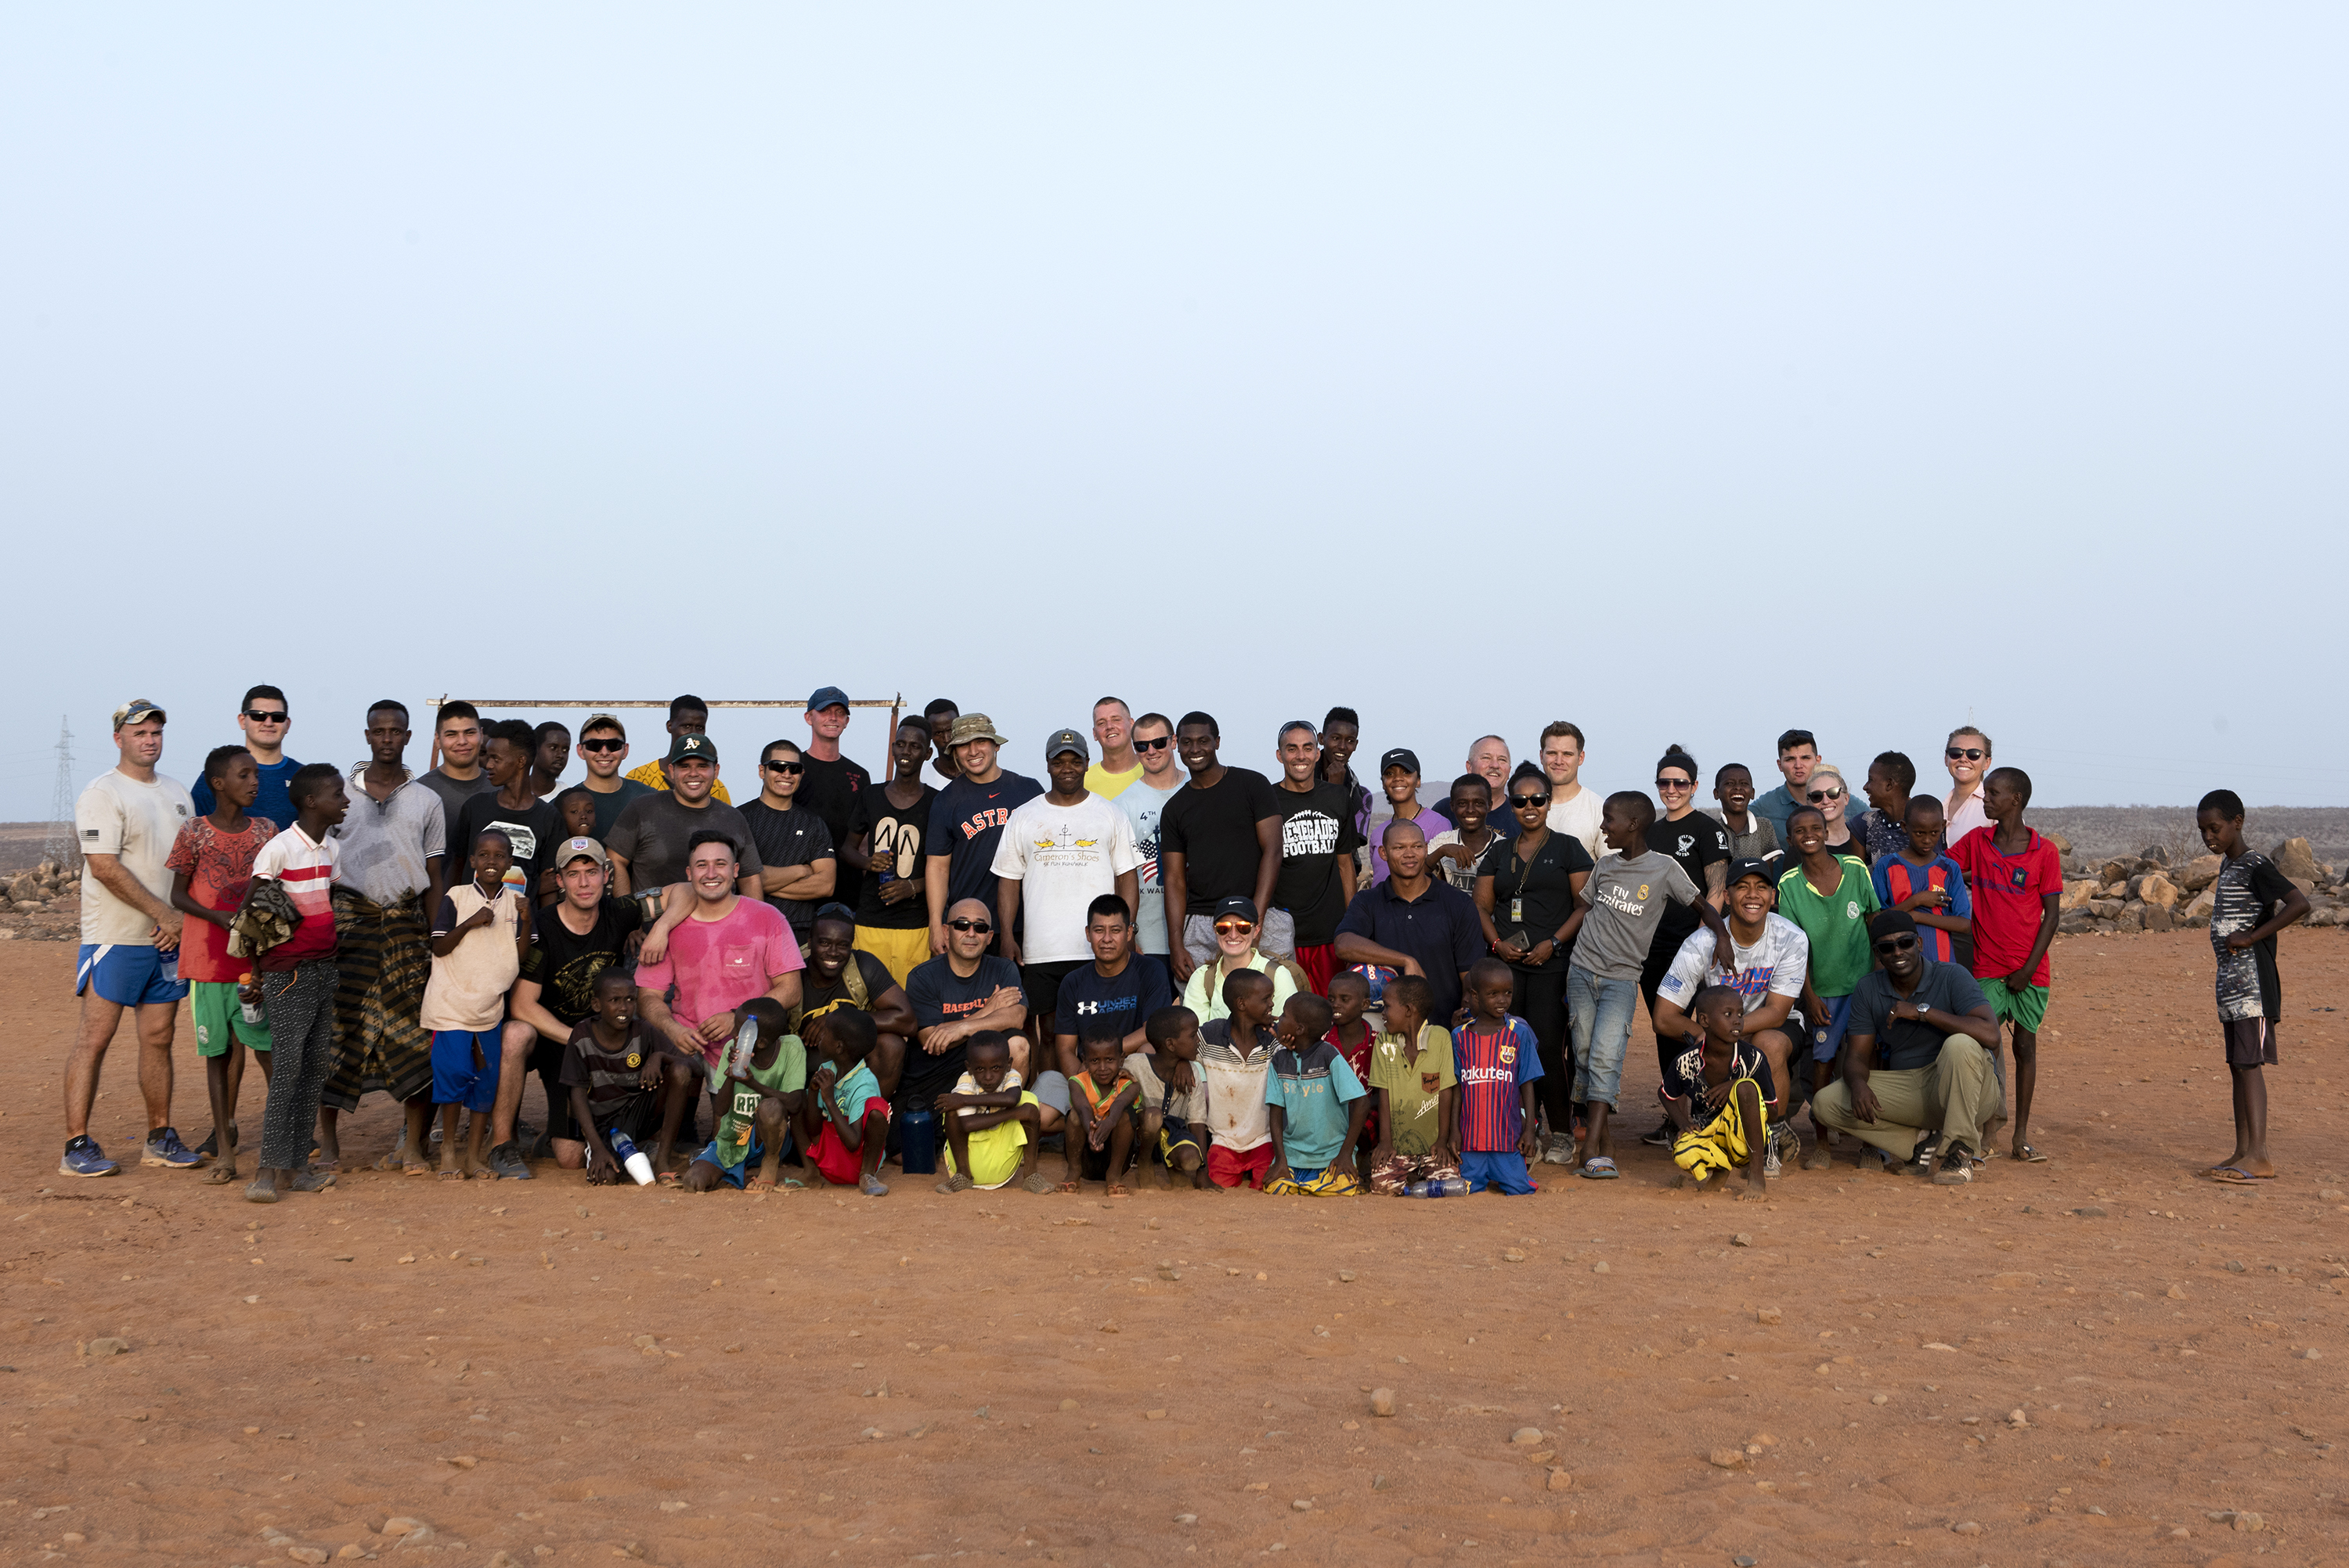 U.S. Service members assigned to Combined Joint Task Force - Horn of Africa pose for a group photo with children from the nearby village outside of Chebelley Village, Djibouti, Aug. 3, 2018. Over 30 Soldiers and Airmen volunteered for the outreach event organized by the 404th Civil Affairs Battalion. (U.S. Air National Guard photo by Master Sgt. Sarah Mattison)